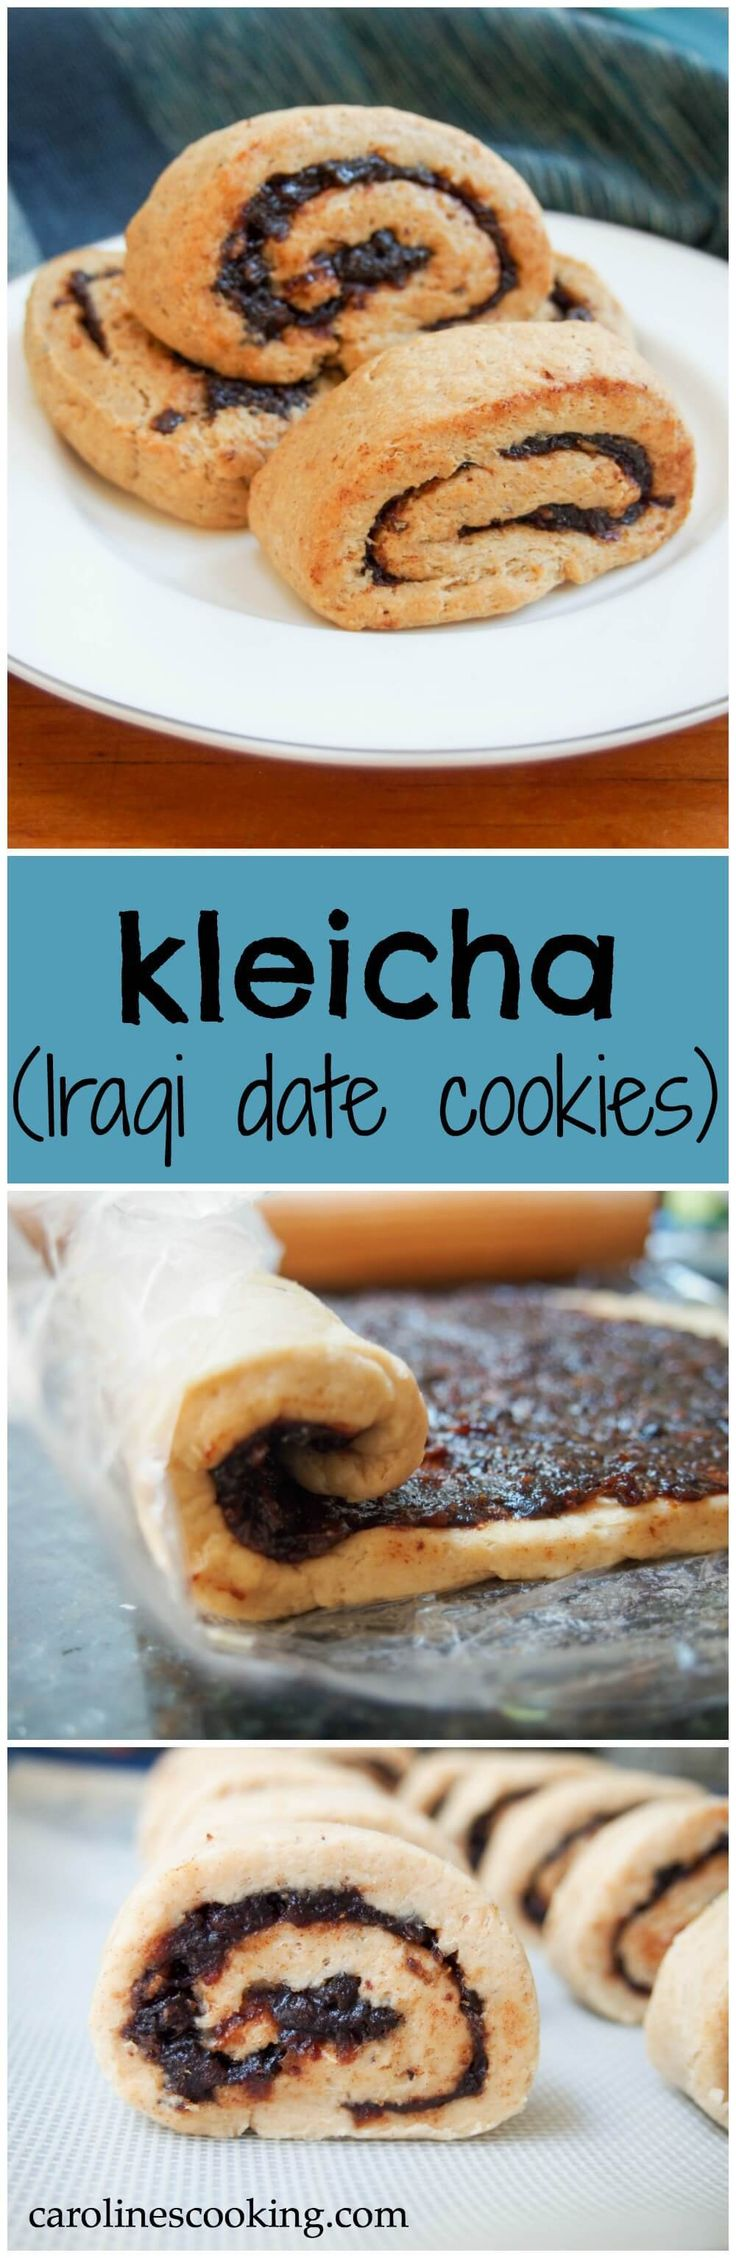 Kleicha, Iraqi date cookies, are a delicious combination of gently spiced dough with a cardamon & fennel-infused date filling. Perfect for sharing. Try them as an alternative to your traditional Holiday cookies.